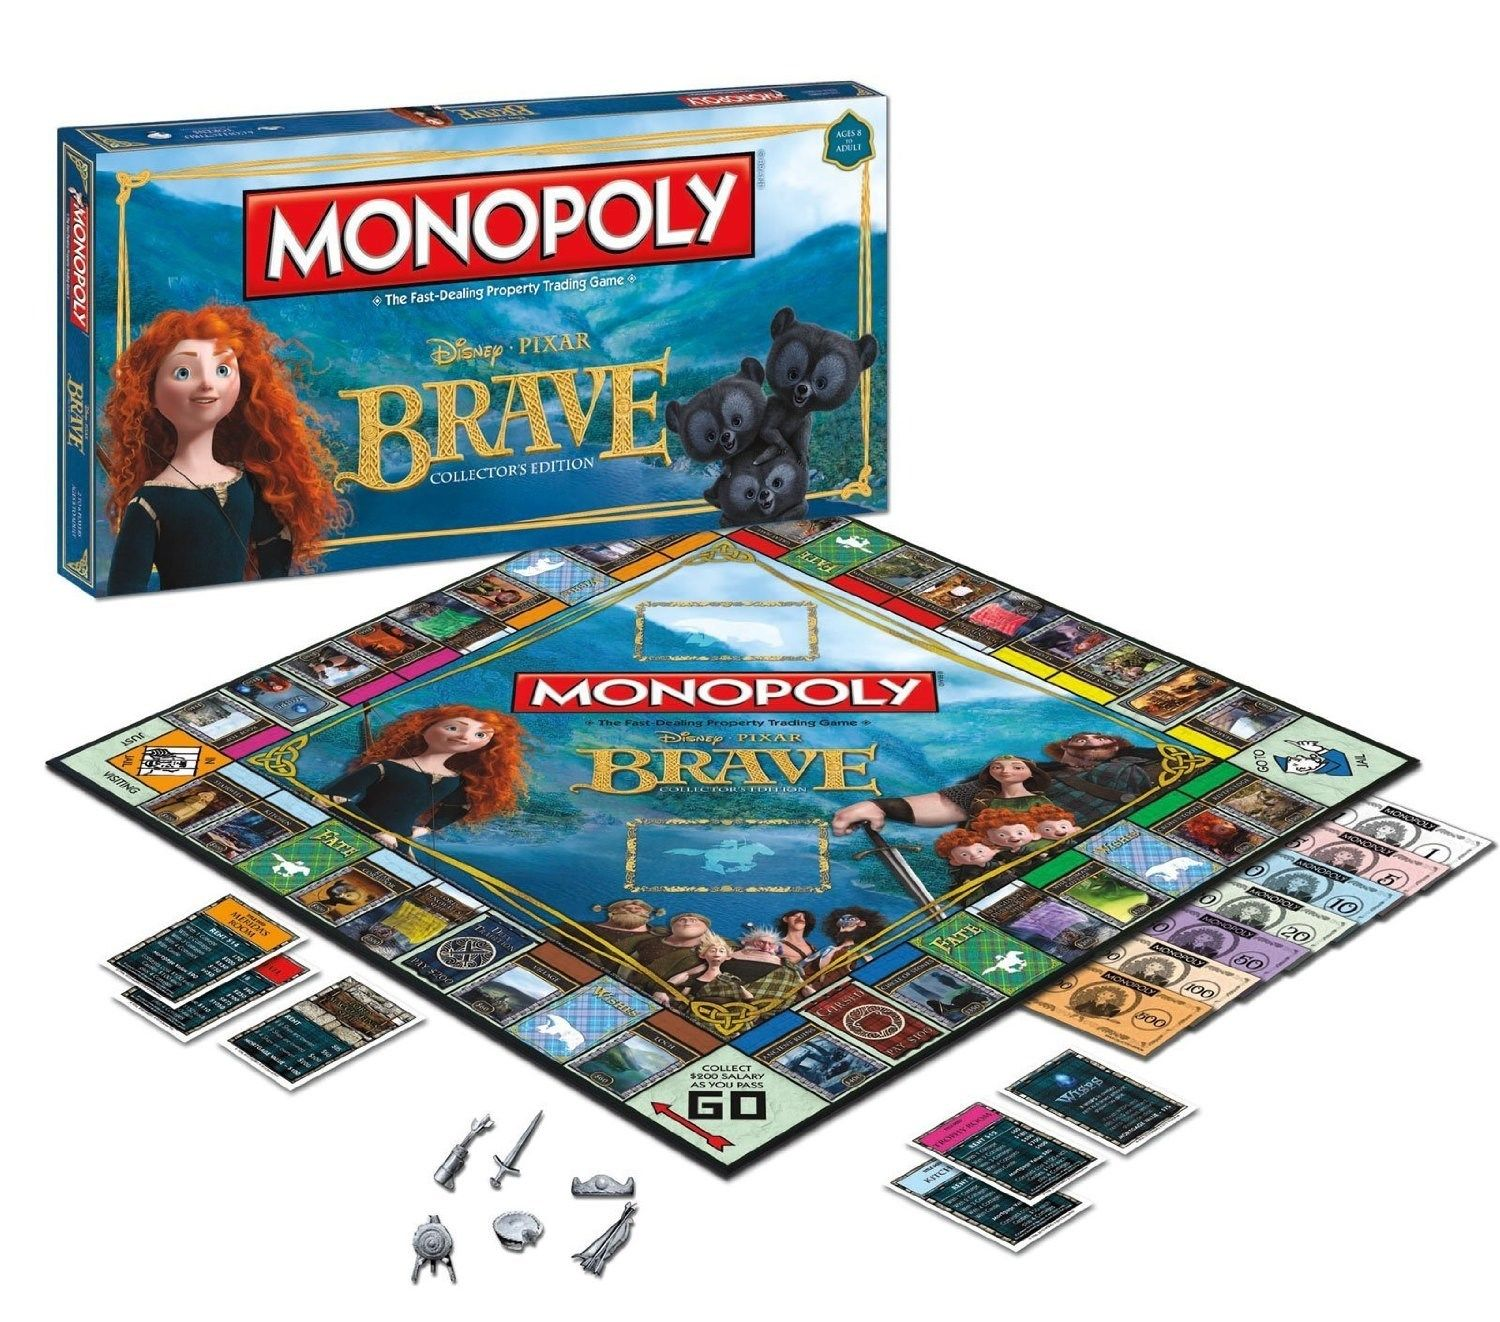 Pixar Brave Monopoly – Collector's Edition by USAopoly